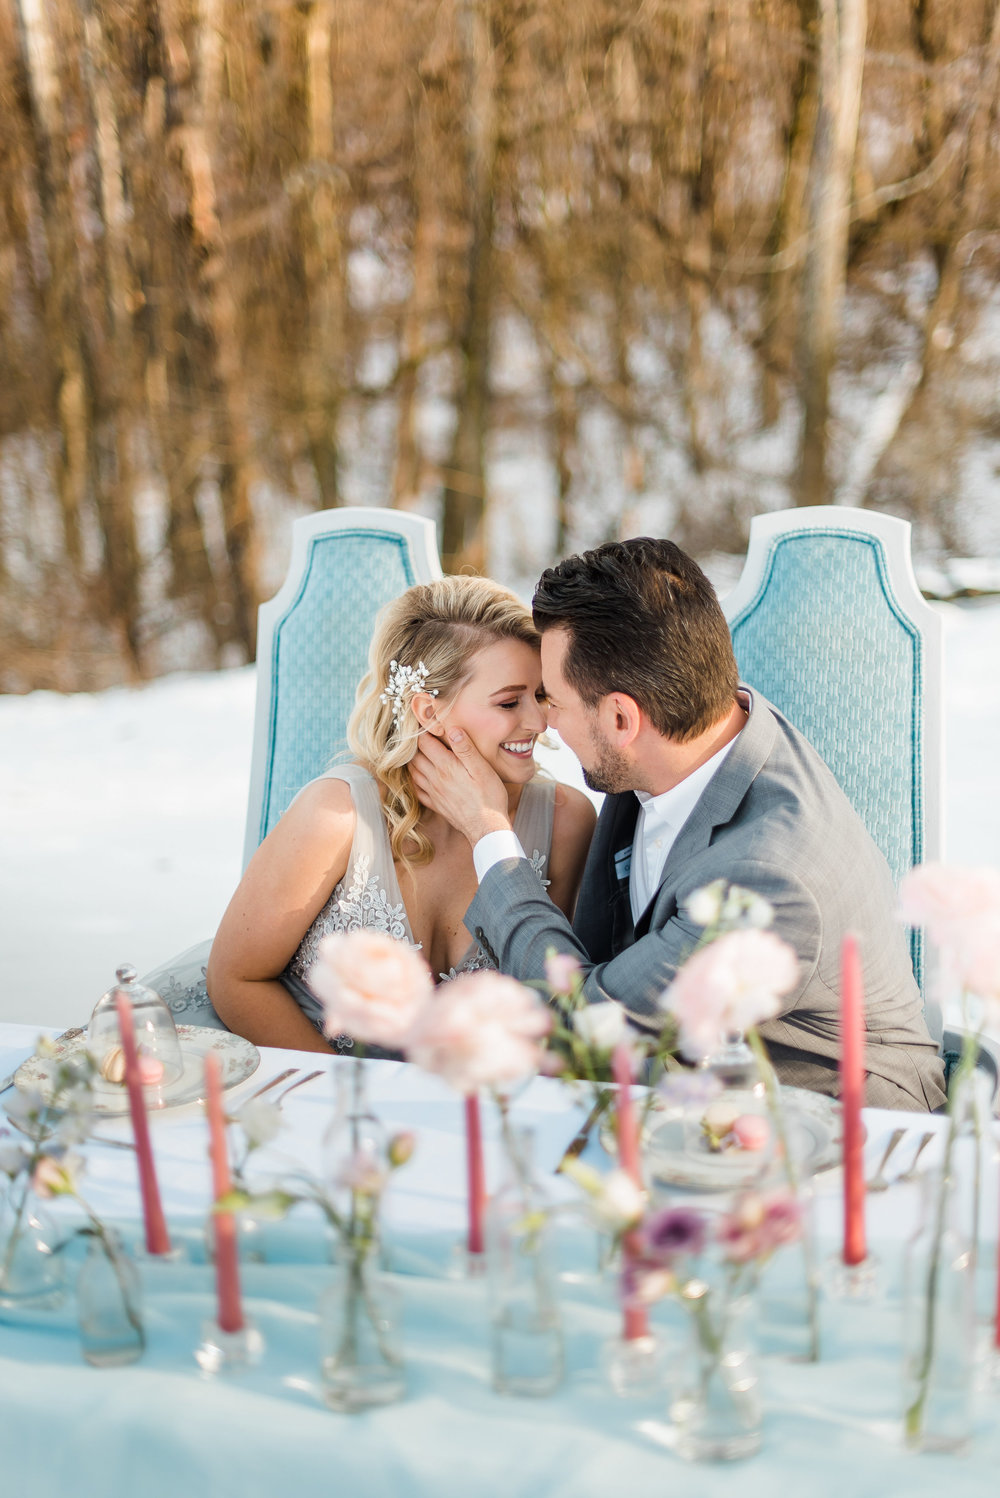 winter-romantic-snowy-pastel-pennsylvania-pittsburgh-wedding-styled-shoot-0010.jpg